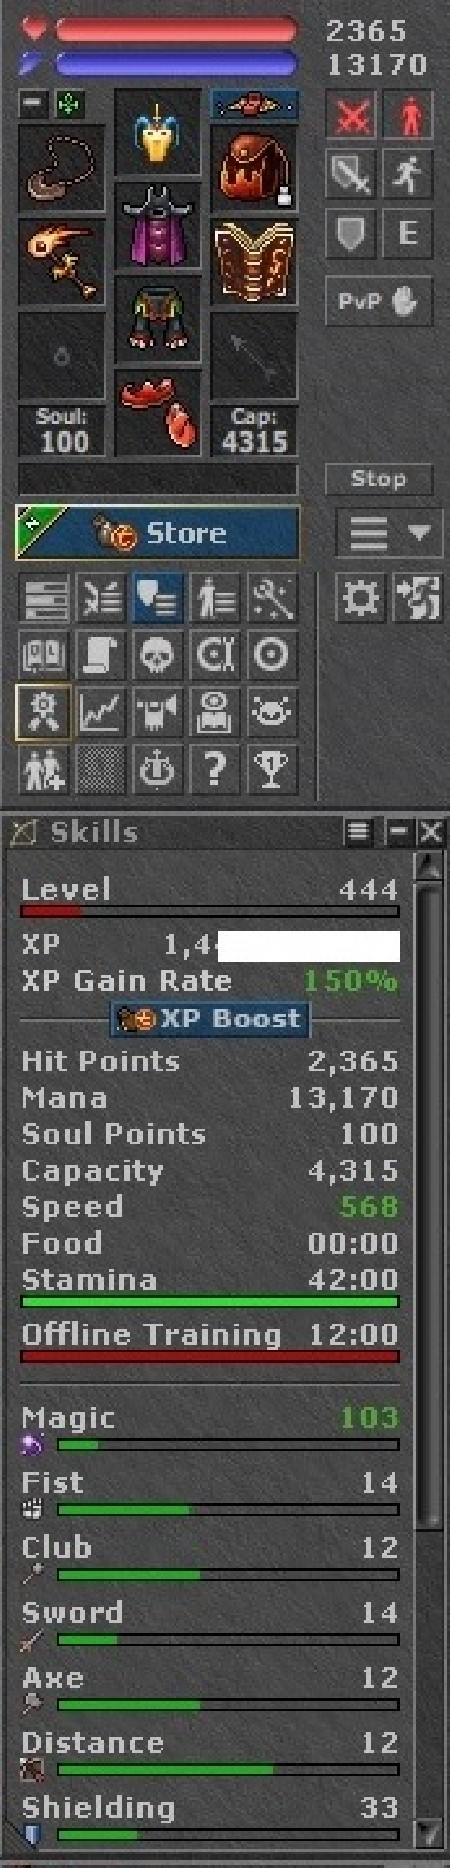 Tibia Character Optional-PvP ~444 MS + 219 RP